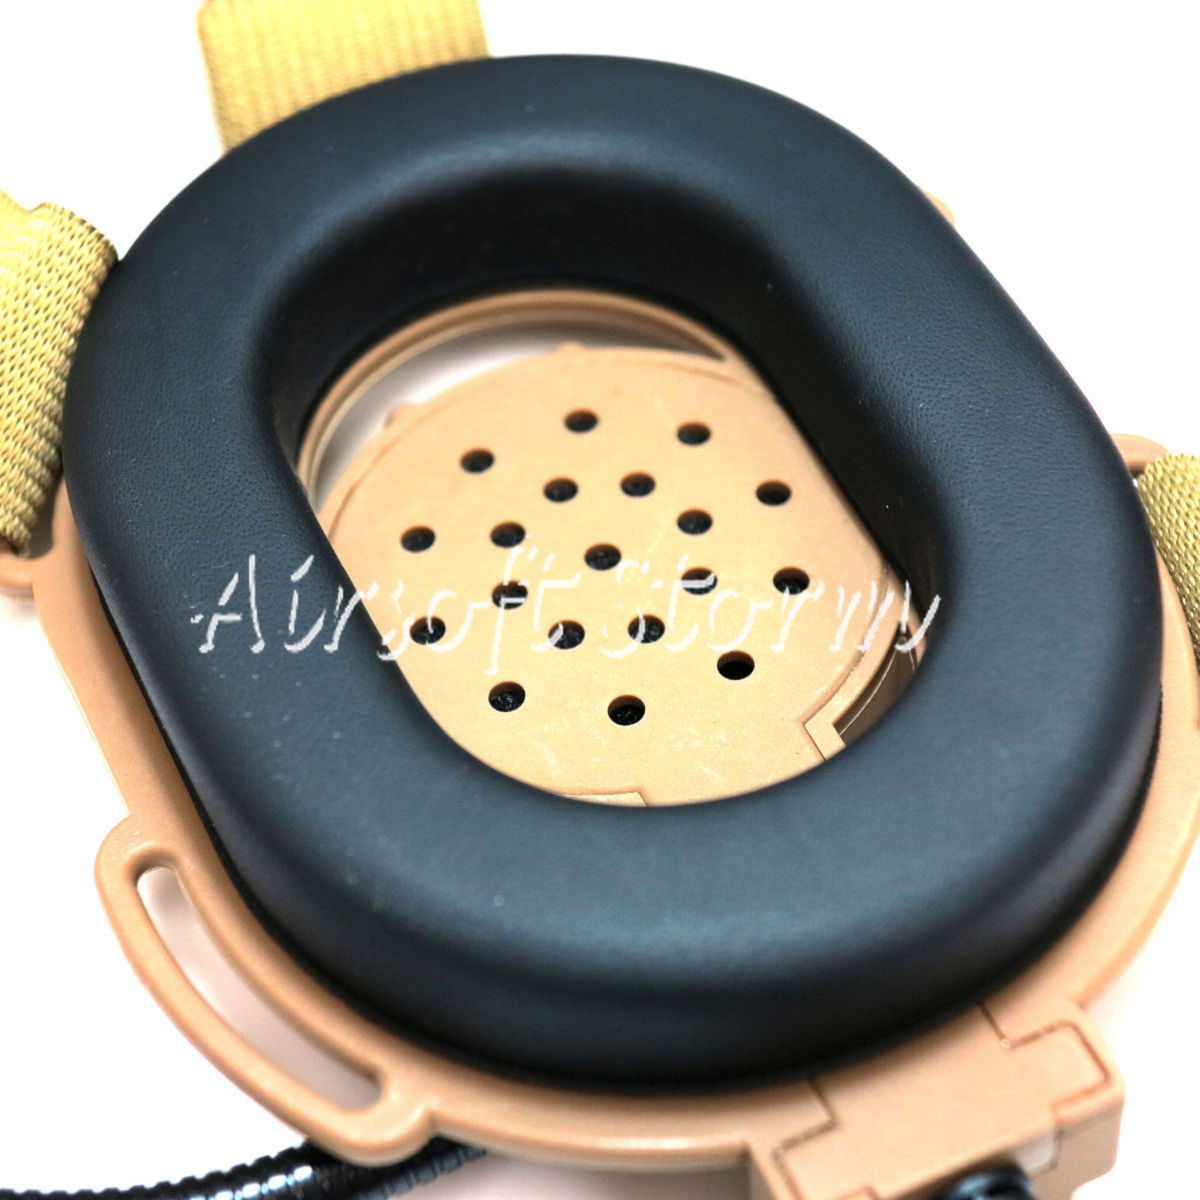 Airsoft Gear SWAT Z Tactical Bowman EVO III Style Headset Desert Tan - Click Image to Close